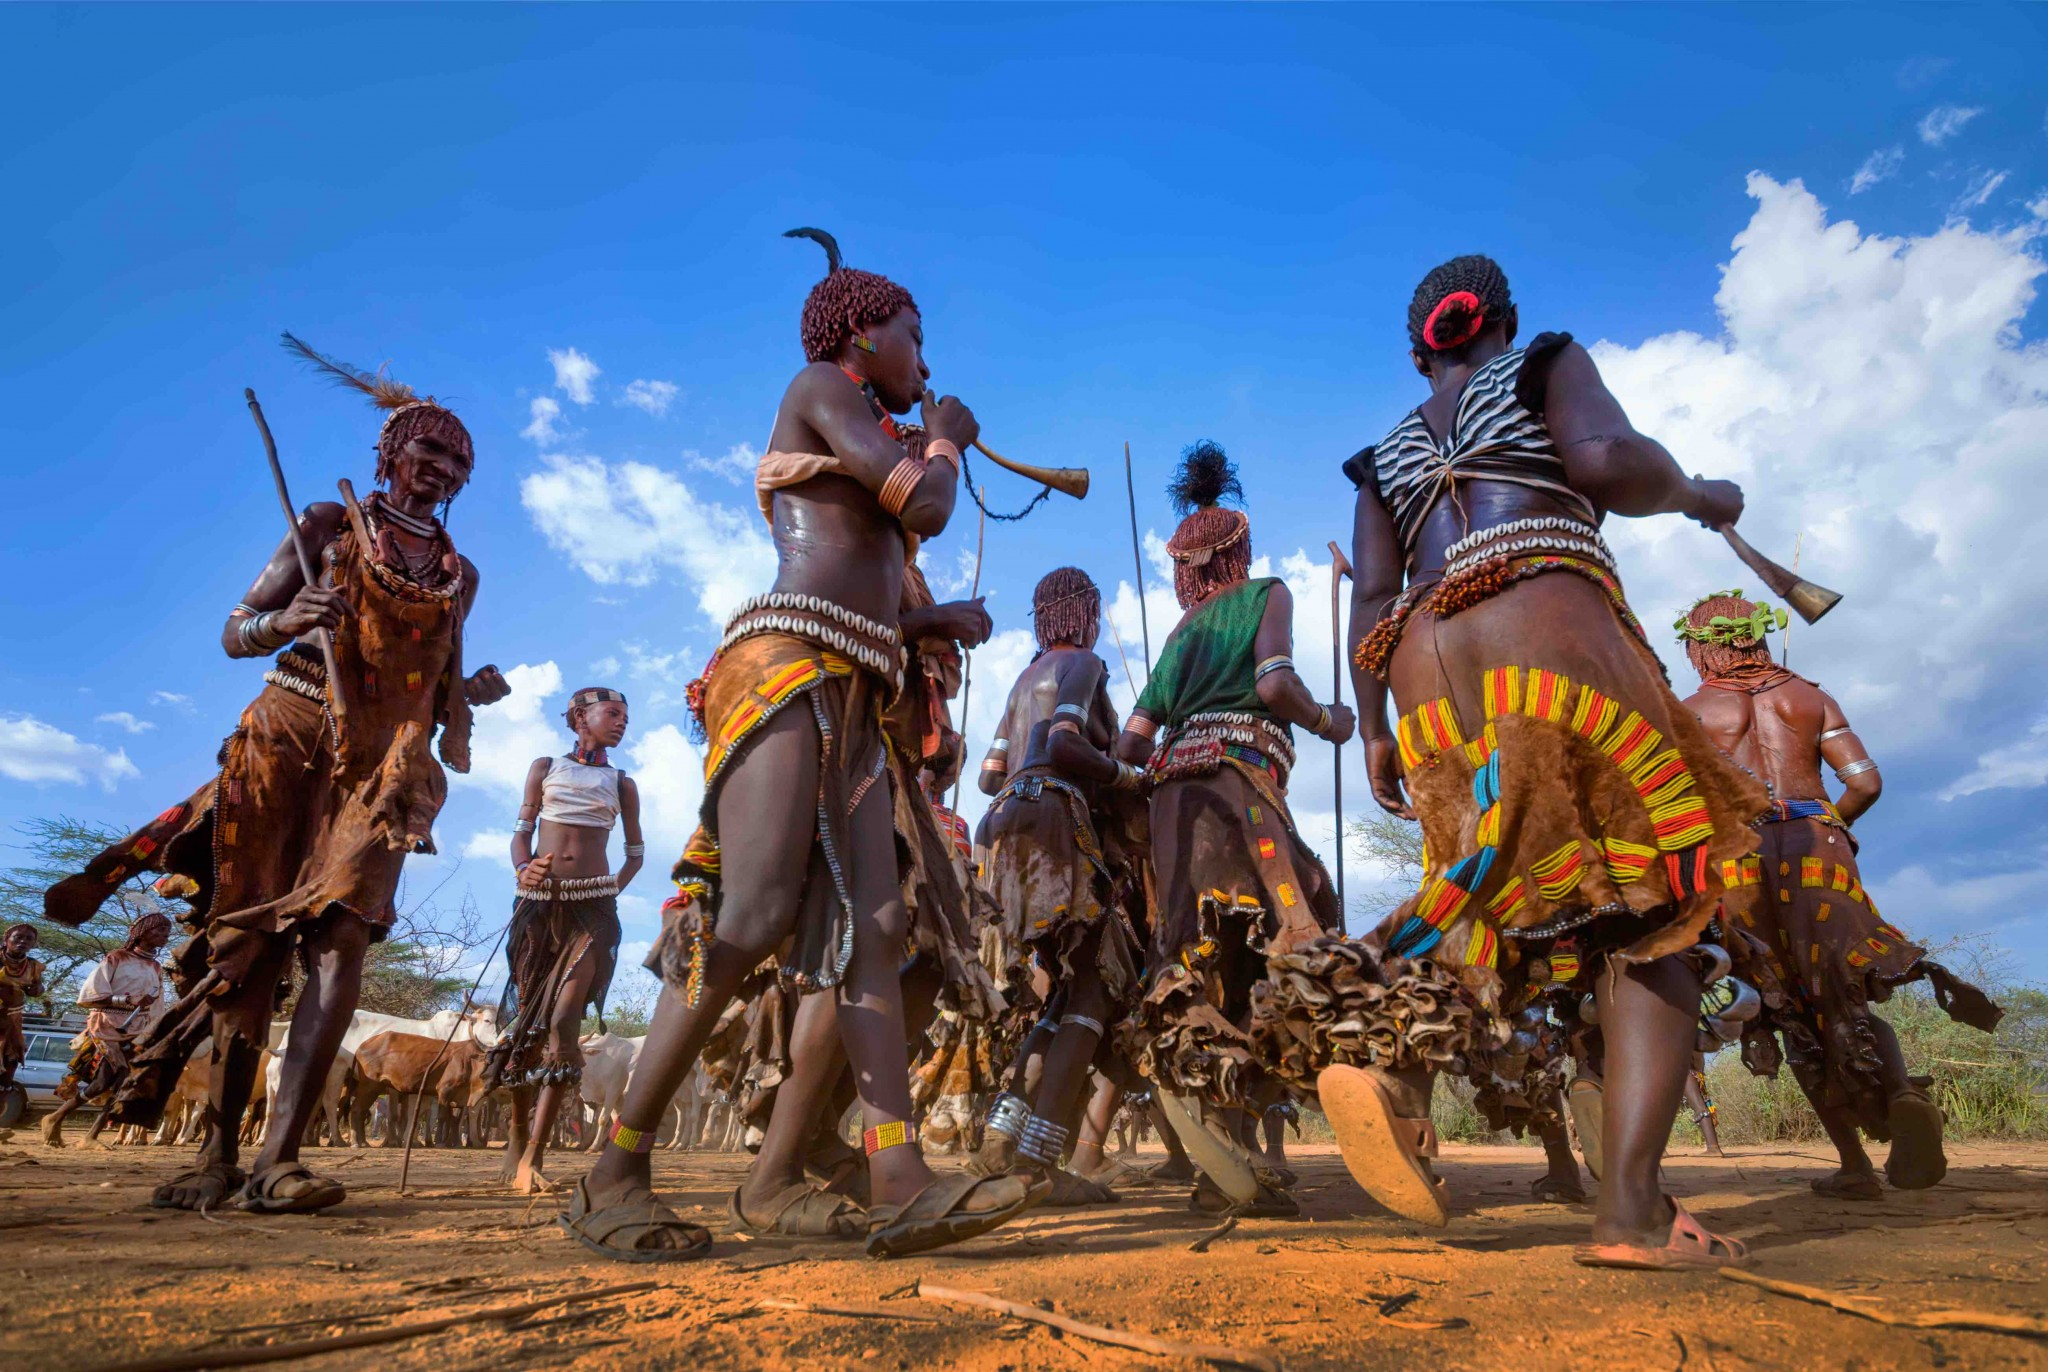 Ethiopia – Diverse South